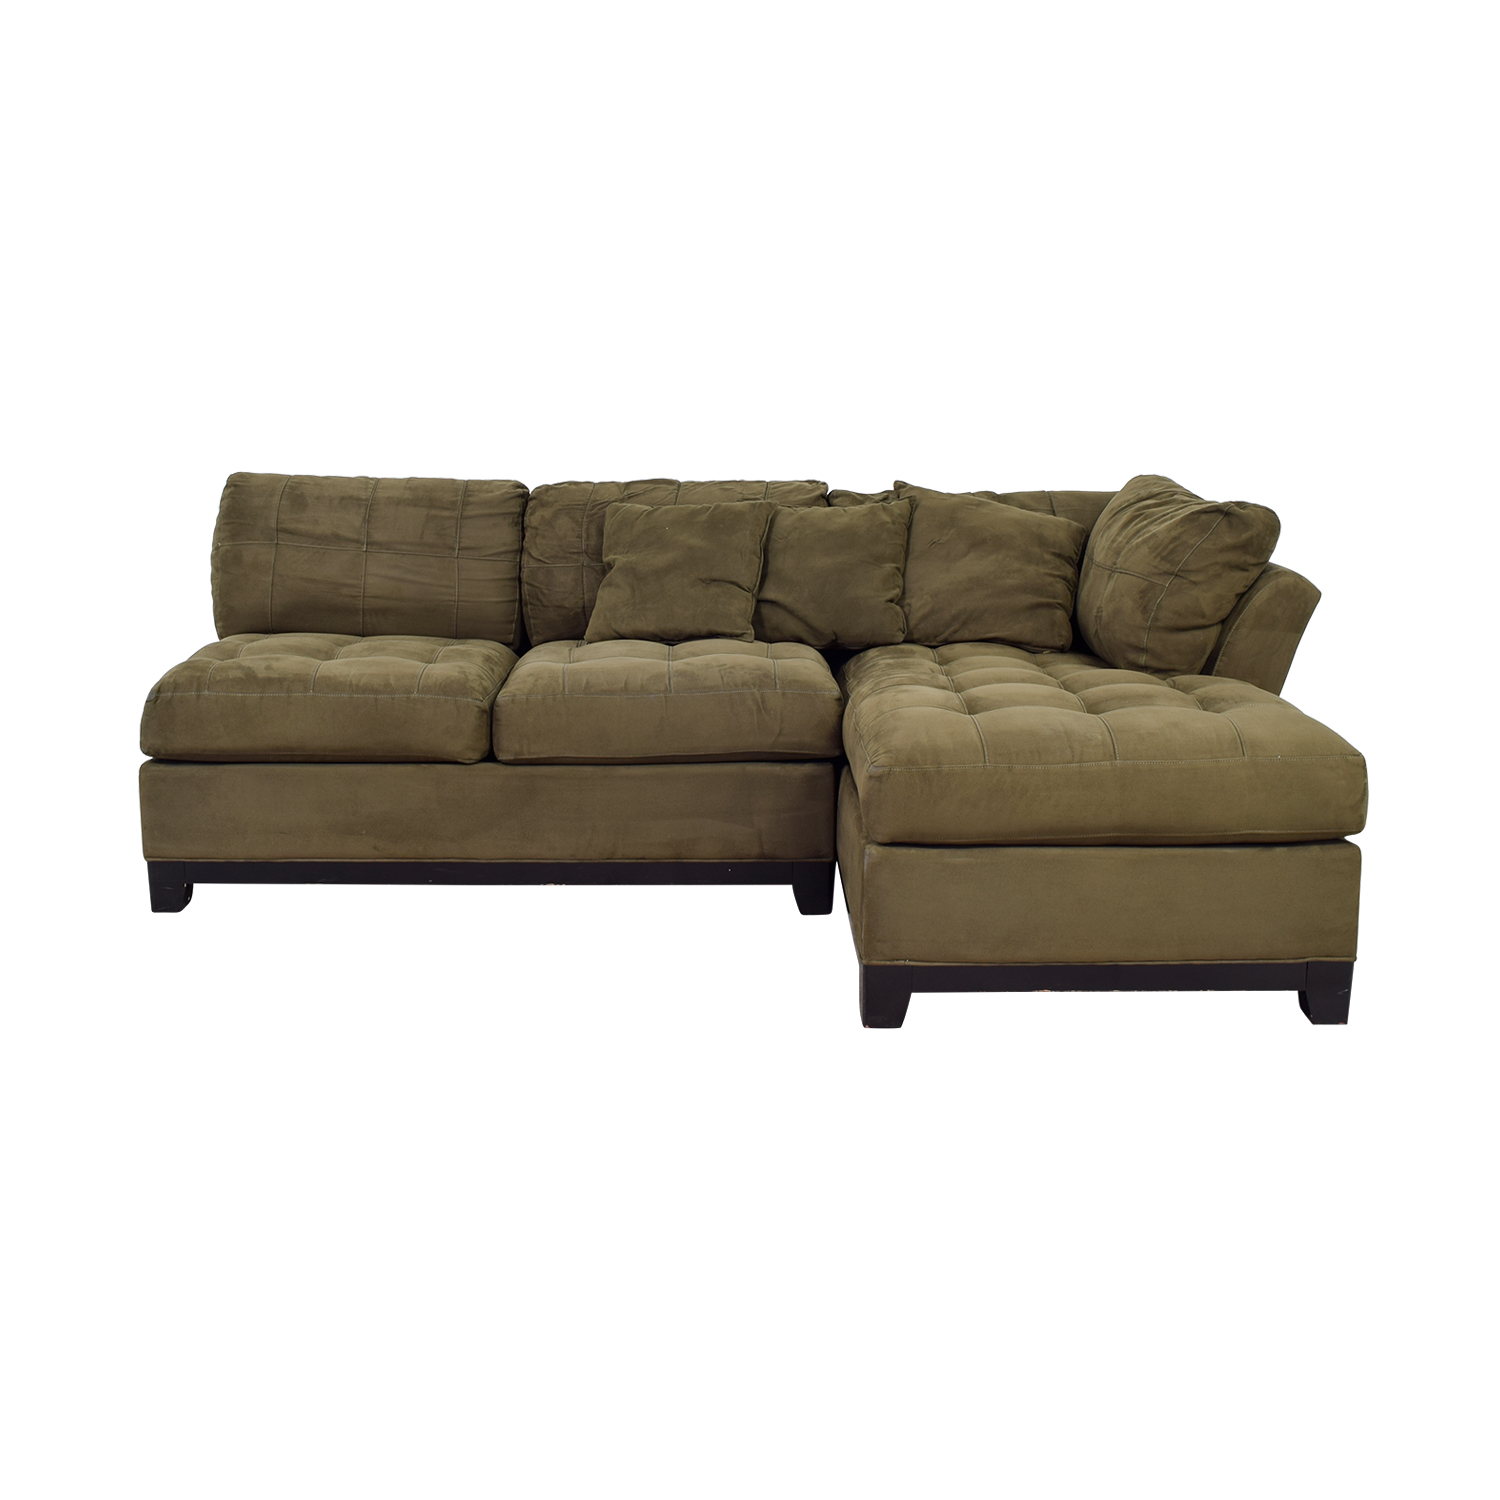 Raymour & Flanigan Raymour & Flanigan Brown Tufted Chaise Sectional price